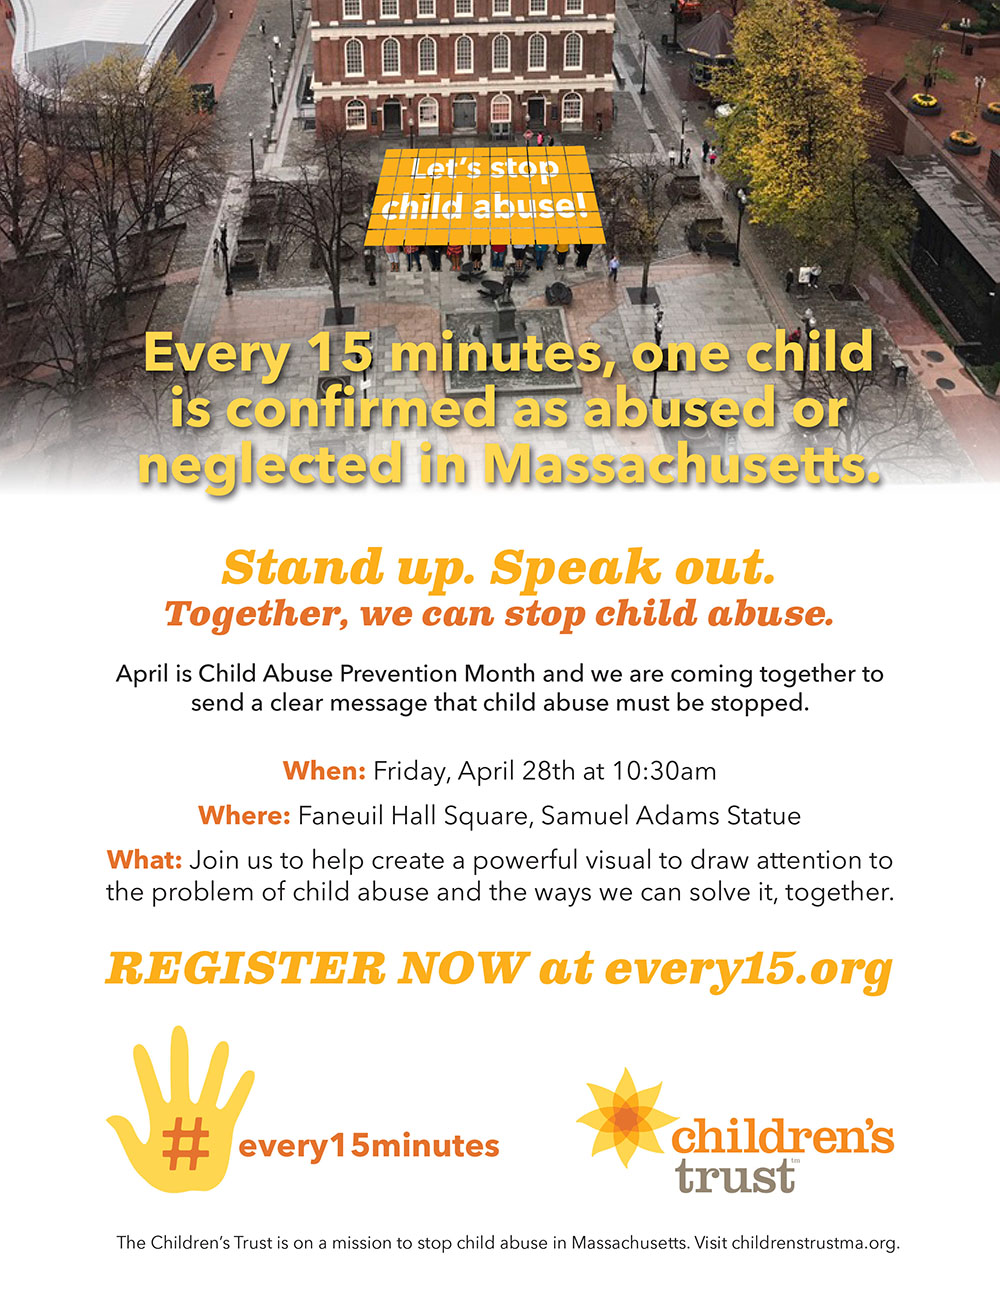 #every15minutes rally flyer